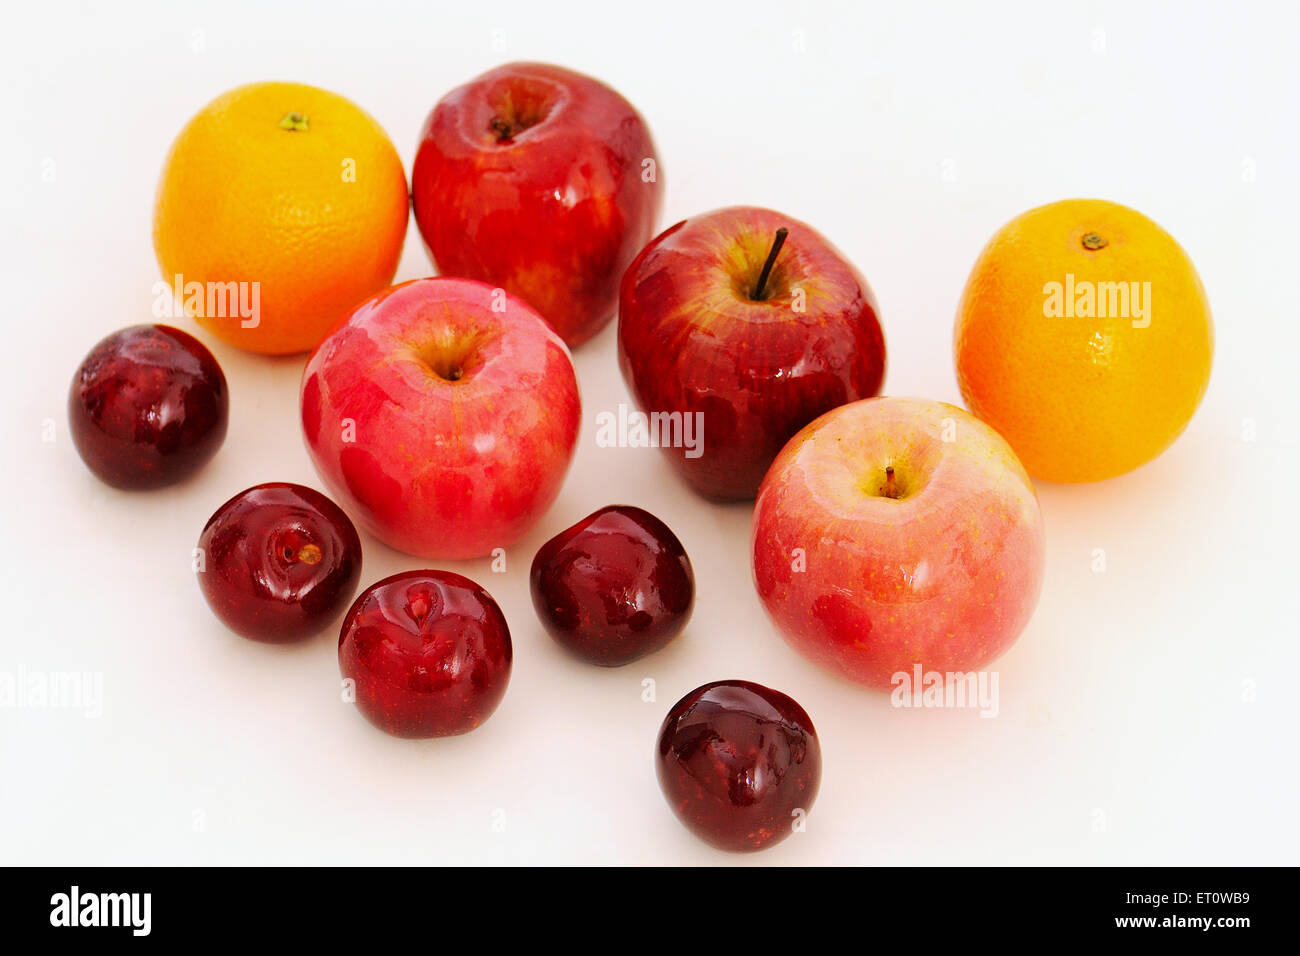 Fruits ; apples ; oranges and plums on white background ; India - Stock Image